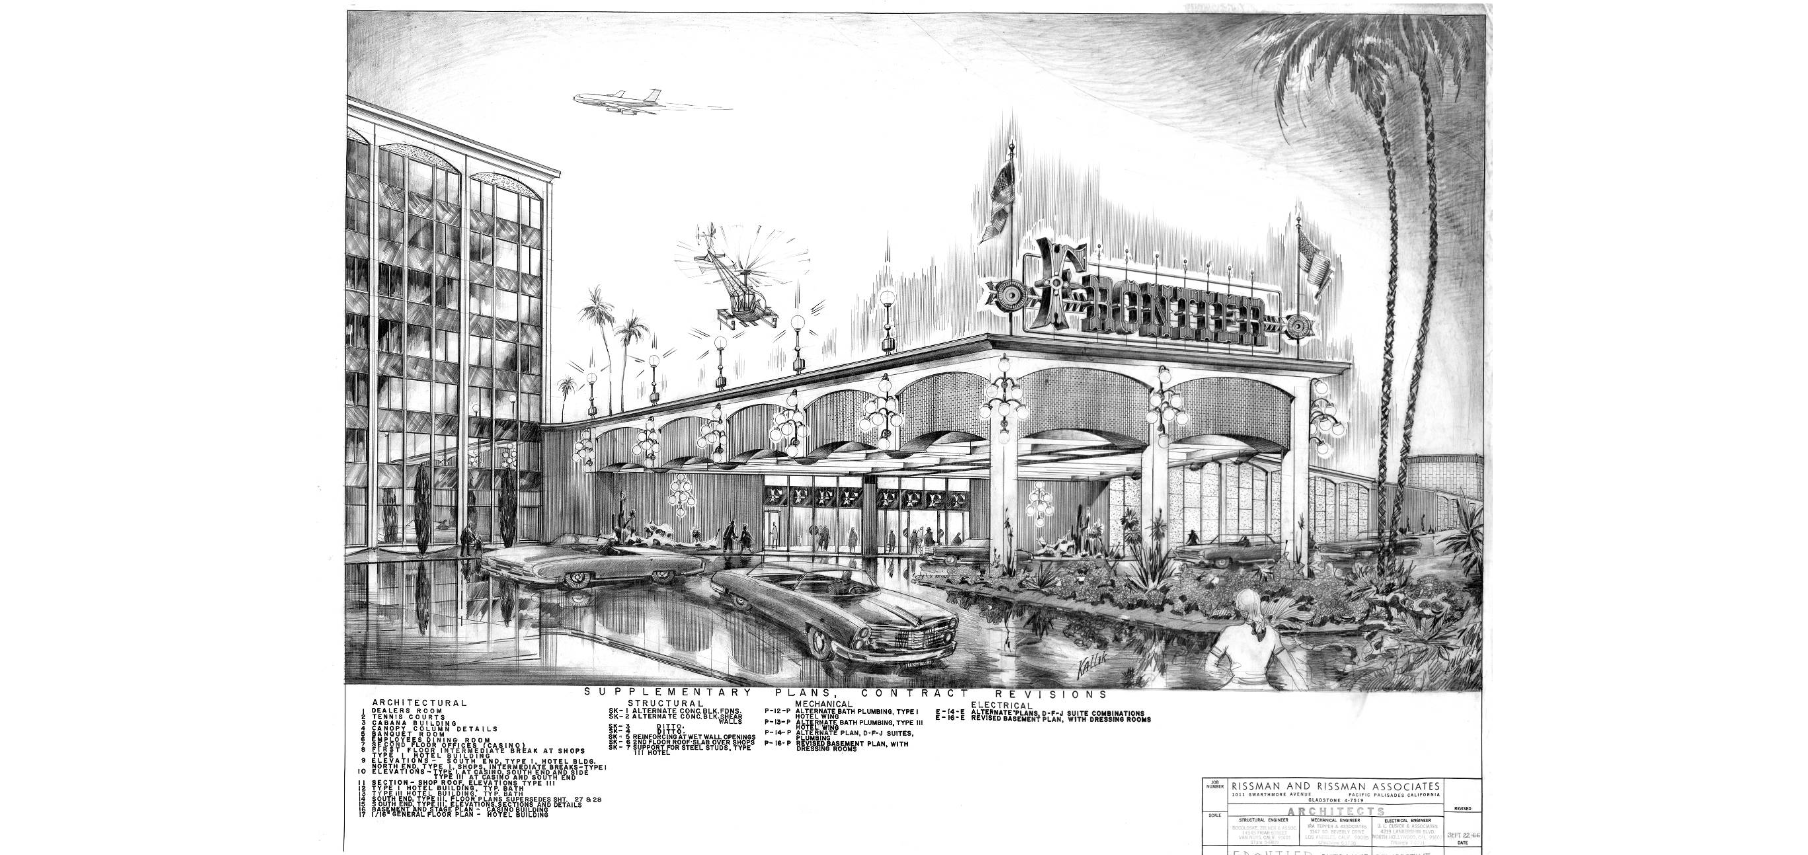 Supplementary plans and contract revisions, New Frontier Hotel and Casino (Las Vegas), Frontier entrance perspective, September 22, 1966